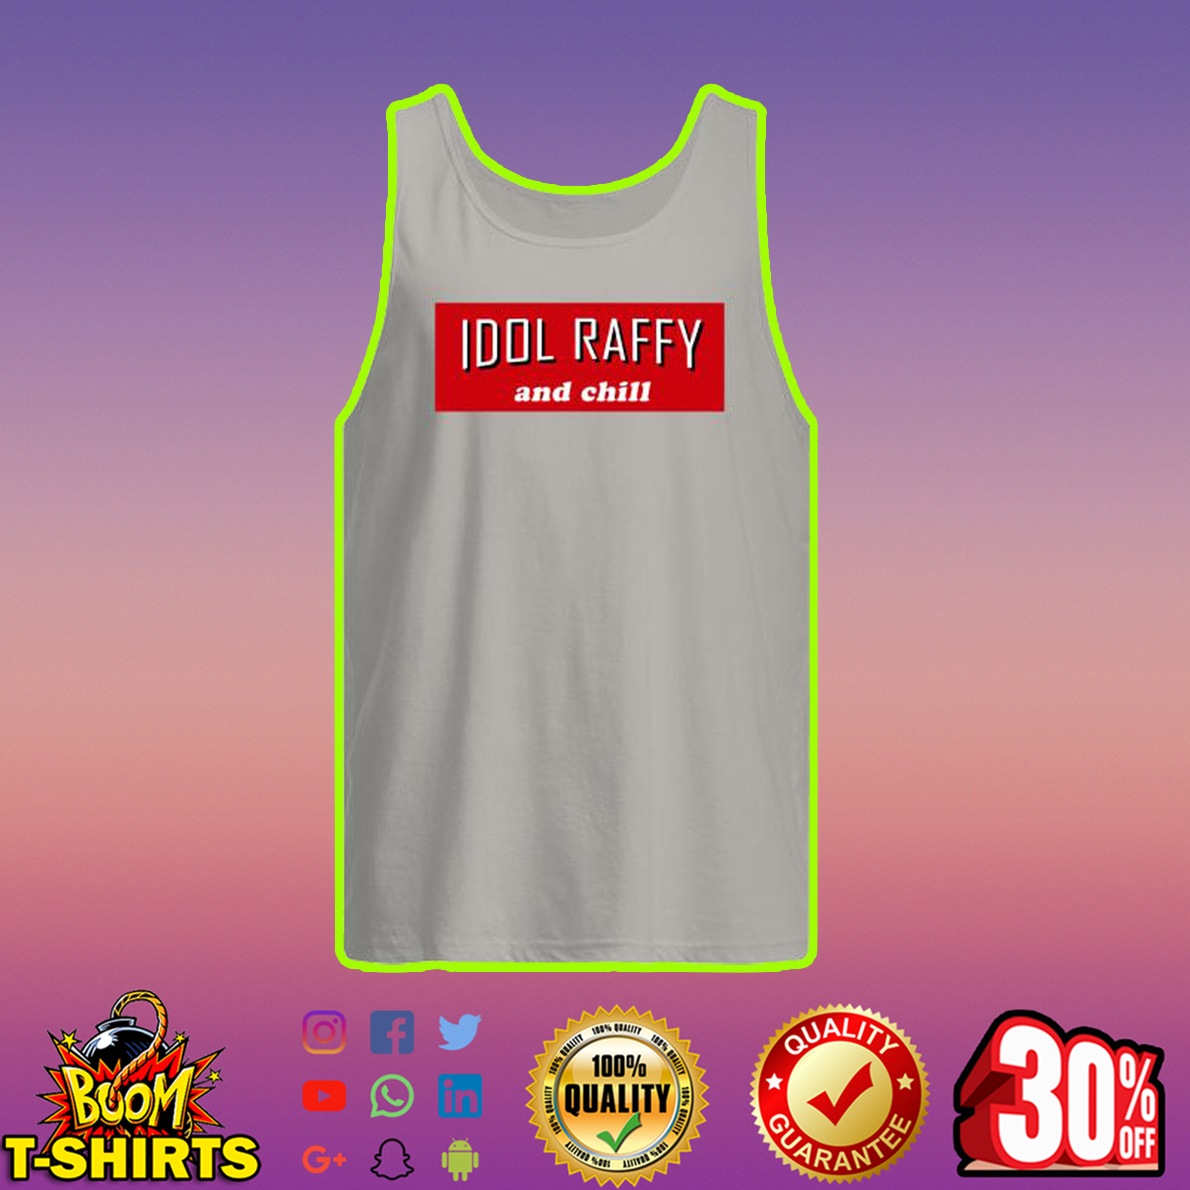 Idol Raffy And Chill tank top